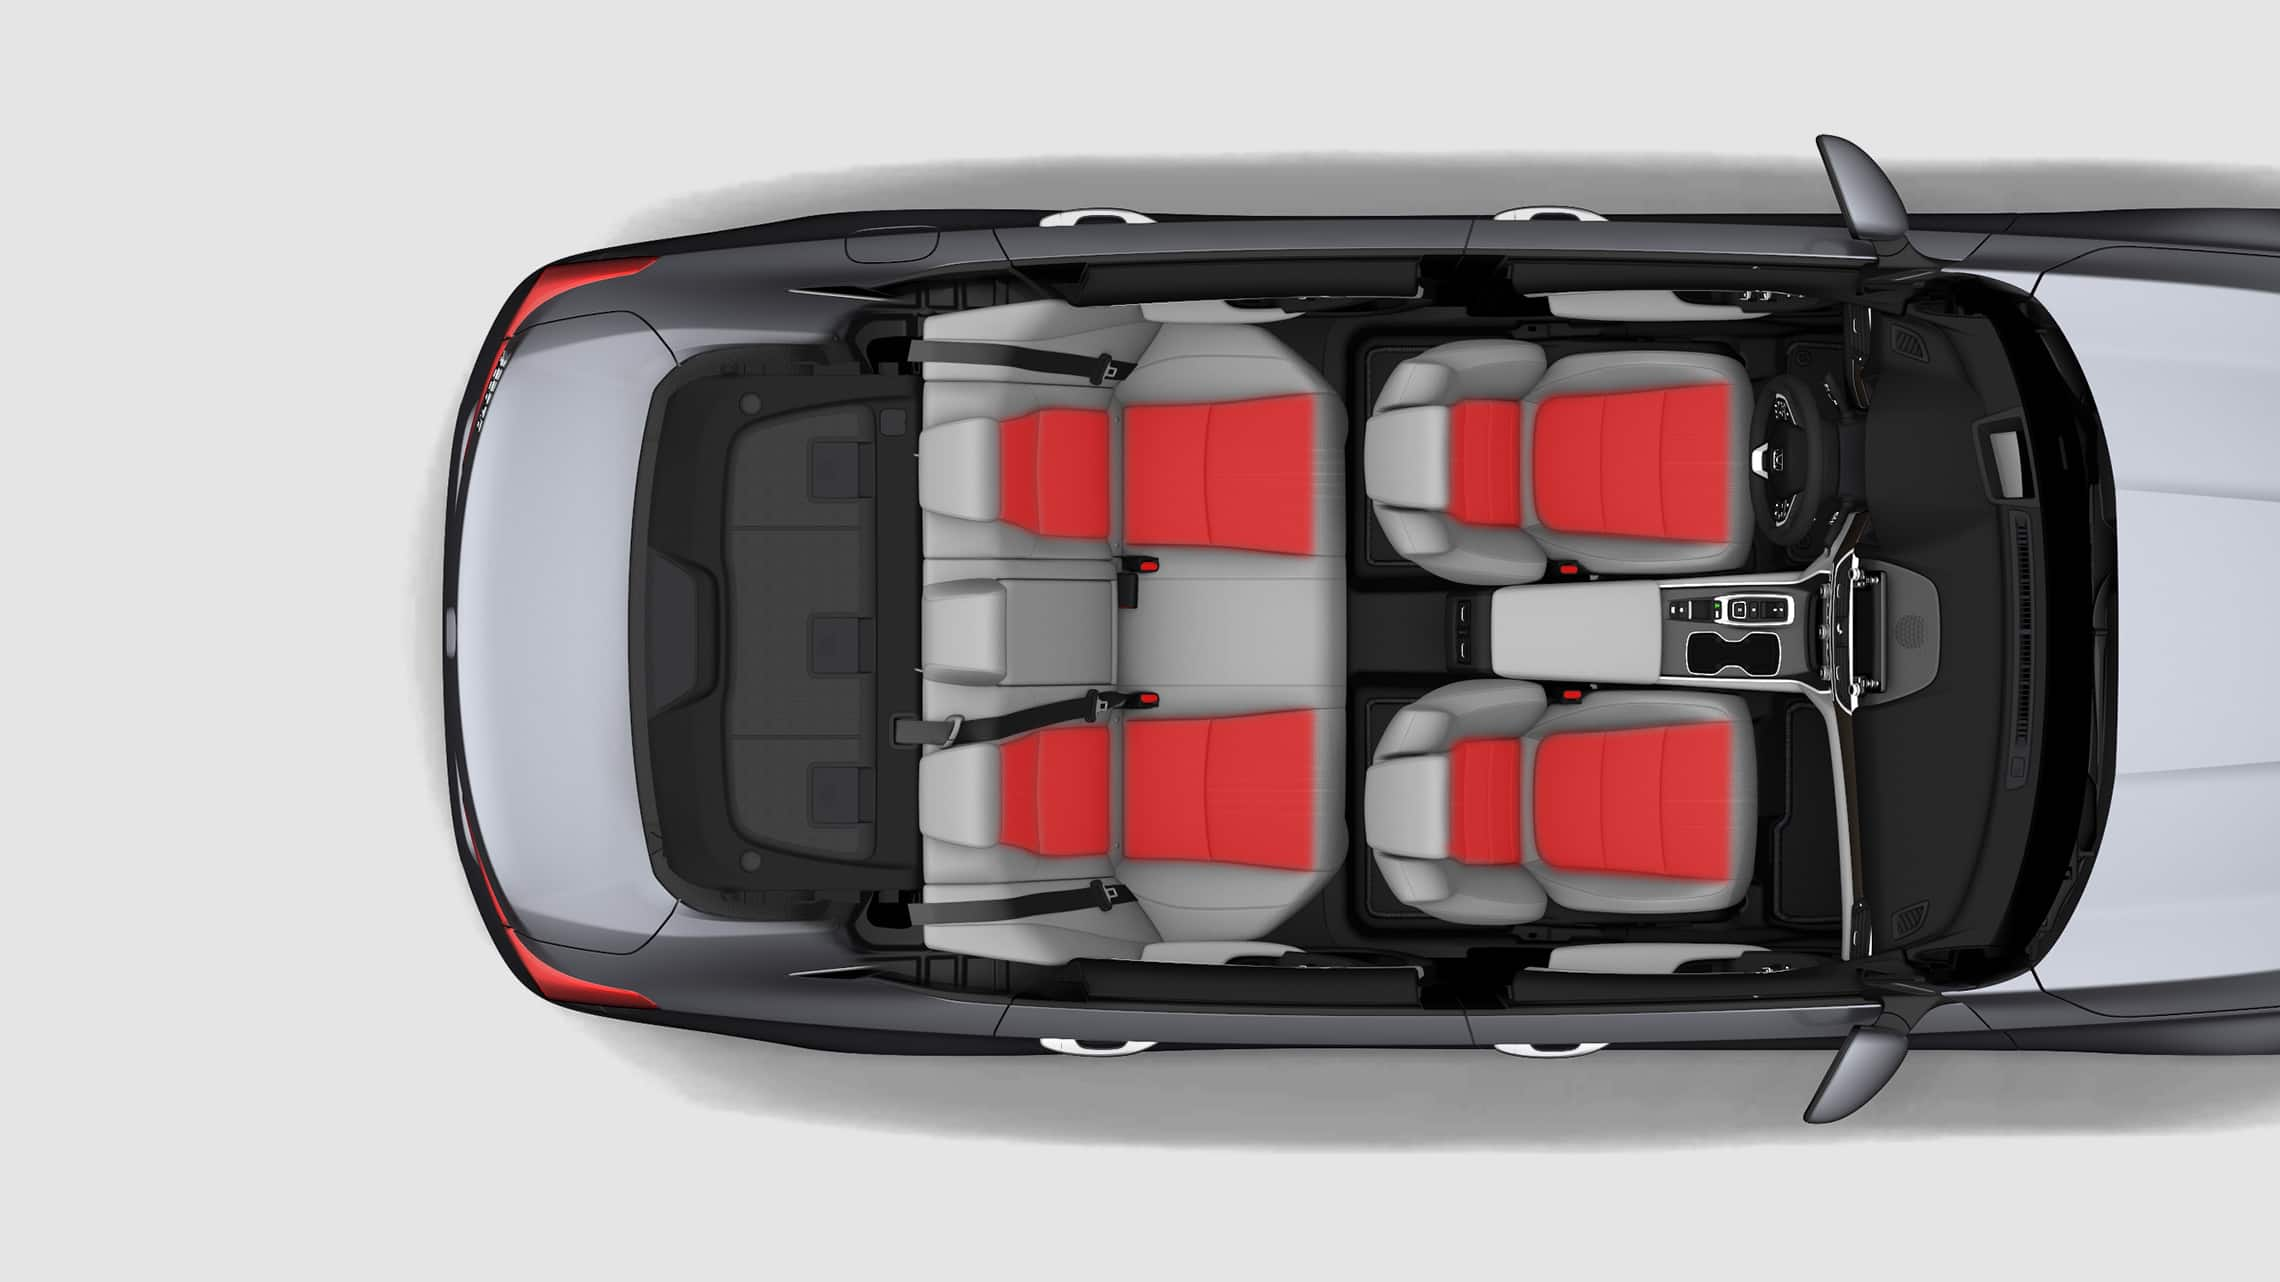 Overhead interior view of the 2020 Honda Accord Touring 2.0T with illustrated temperature waves showing heated front seats and rear outboard seats.